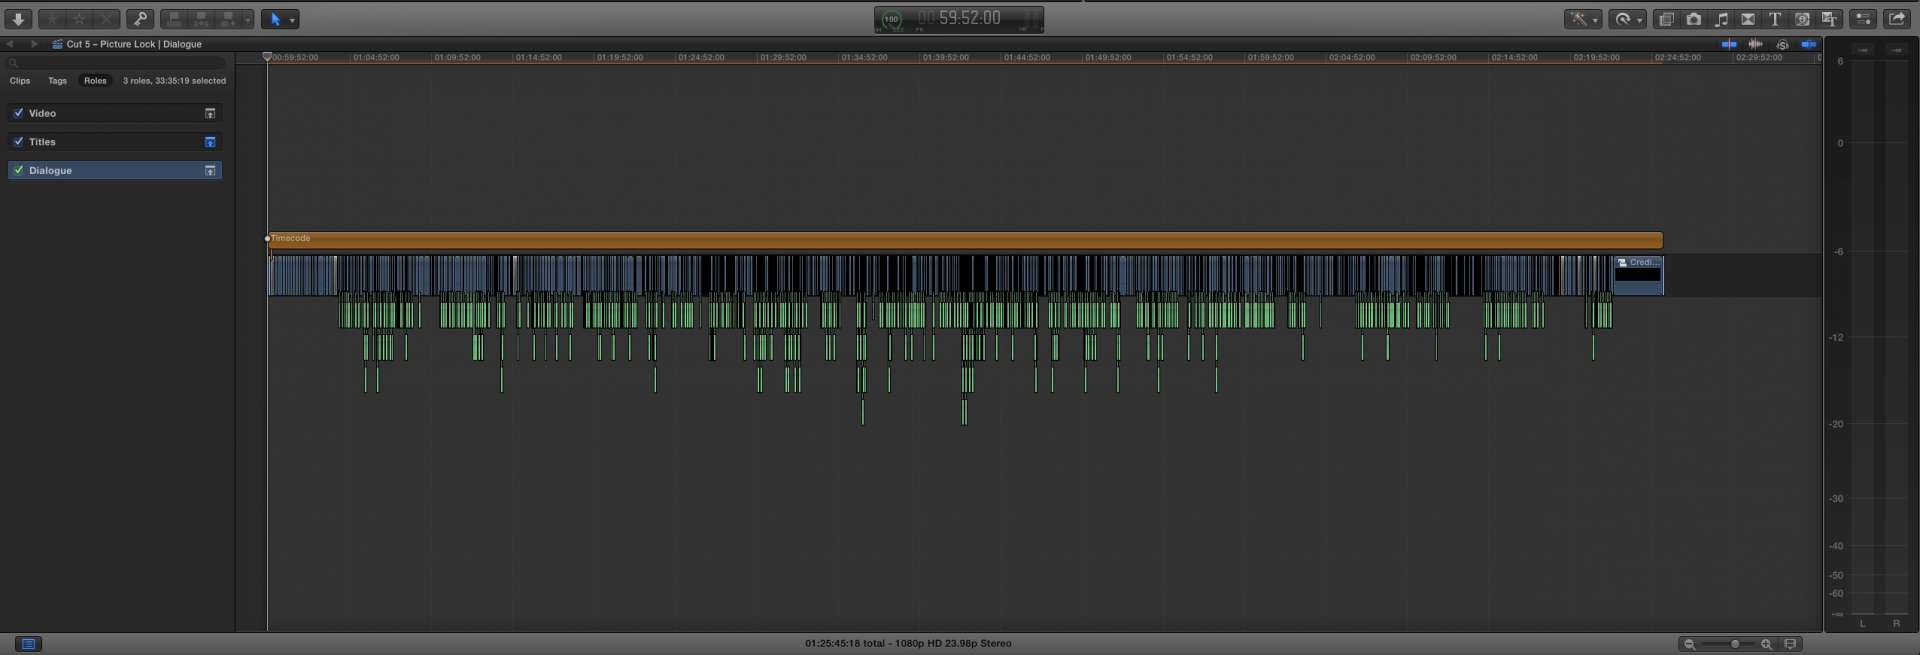 FCPXTimeline-1.png